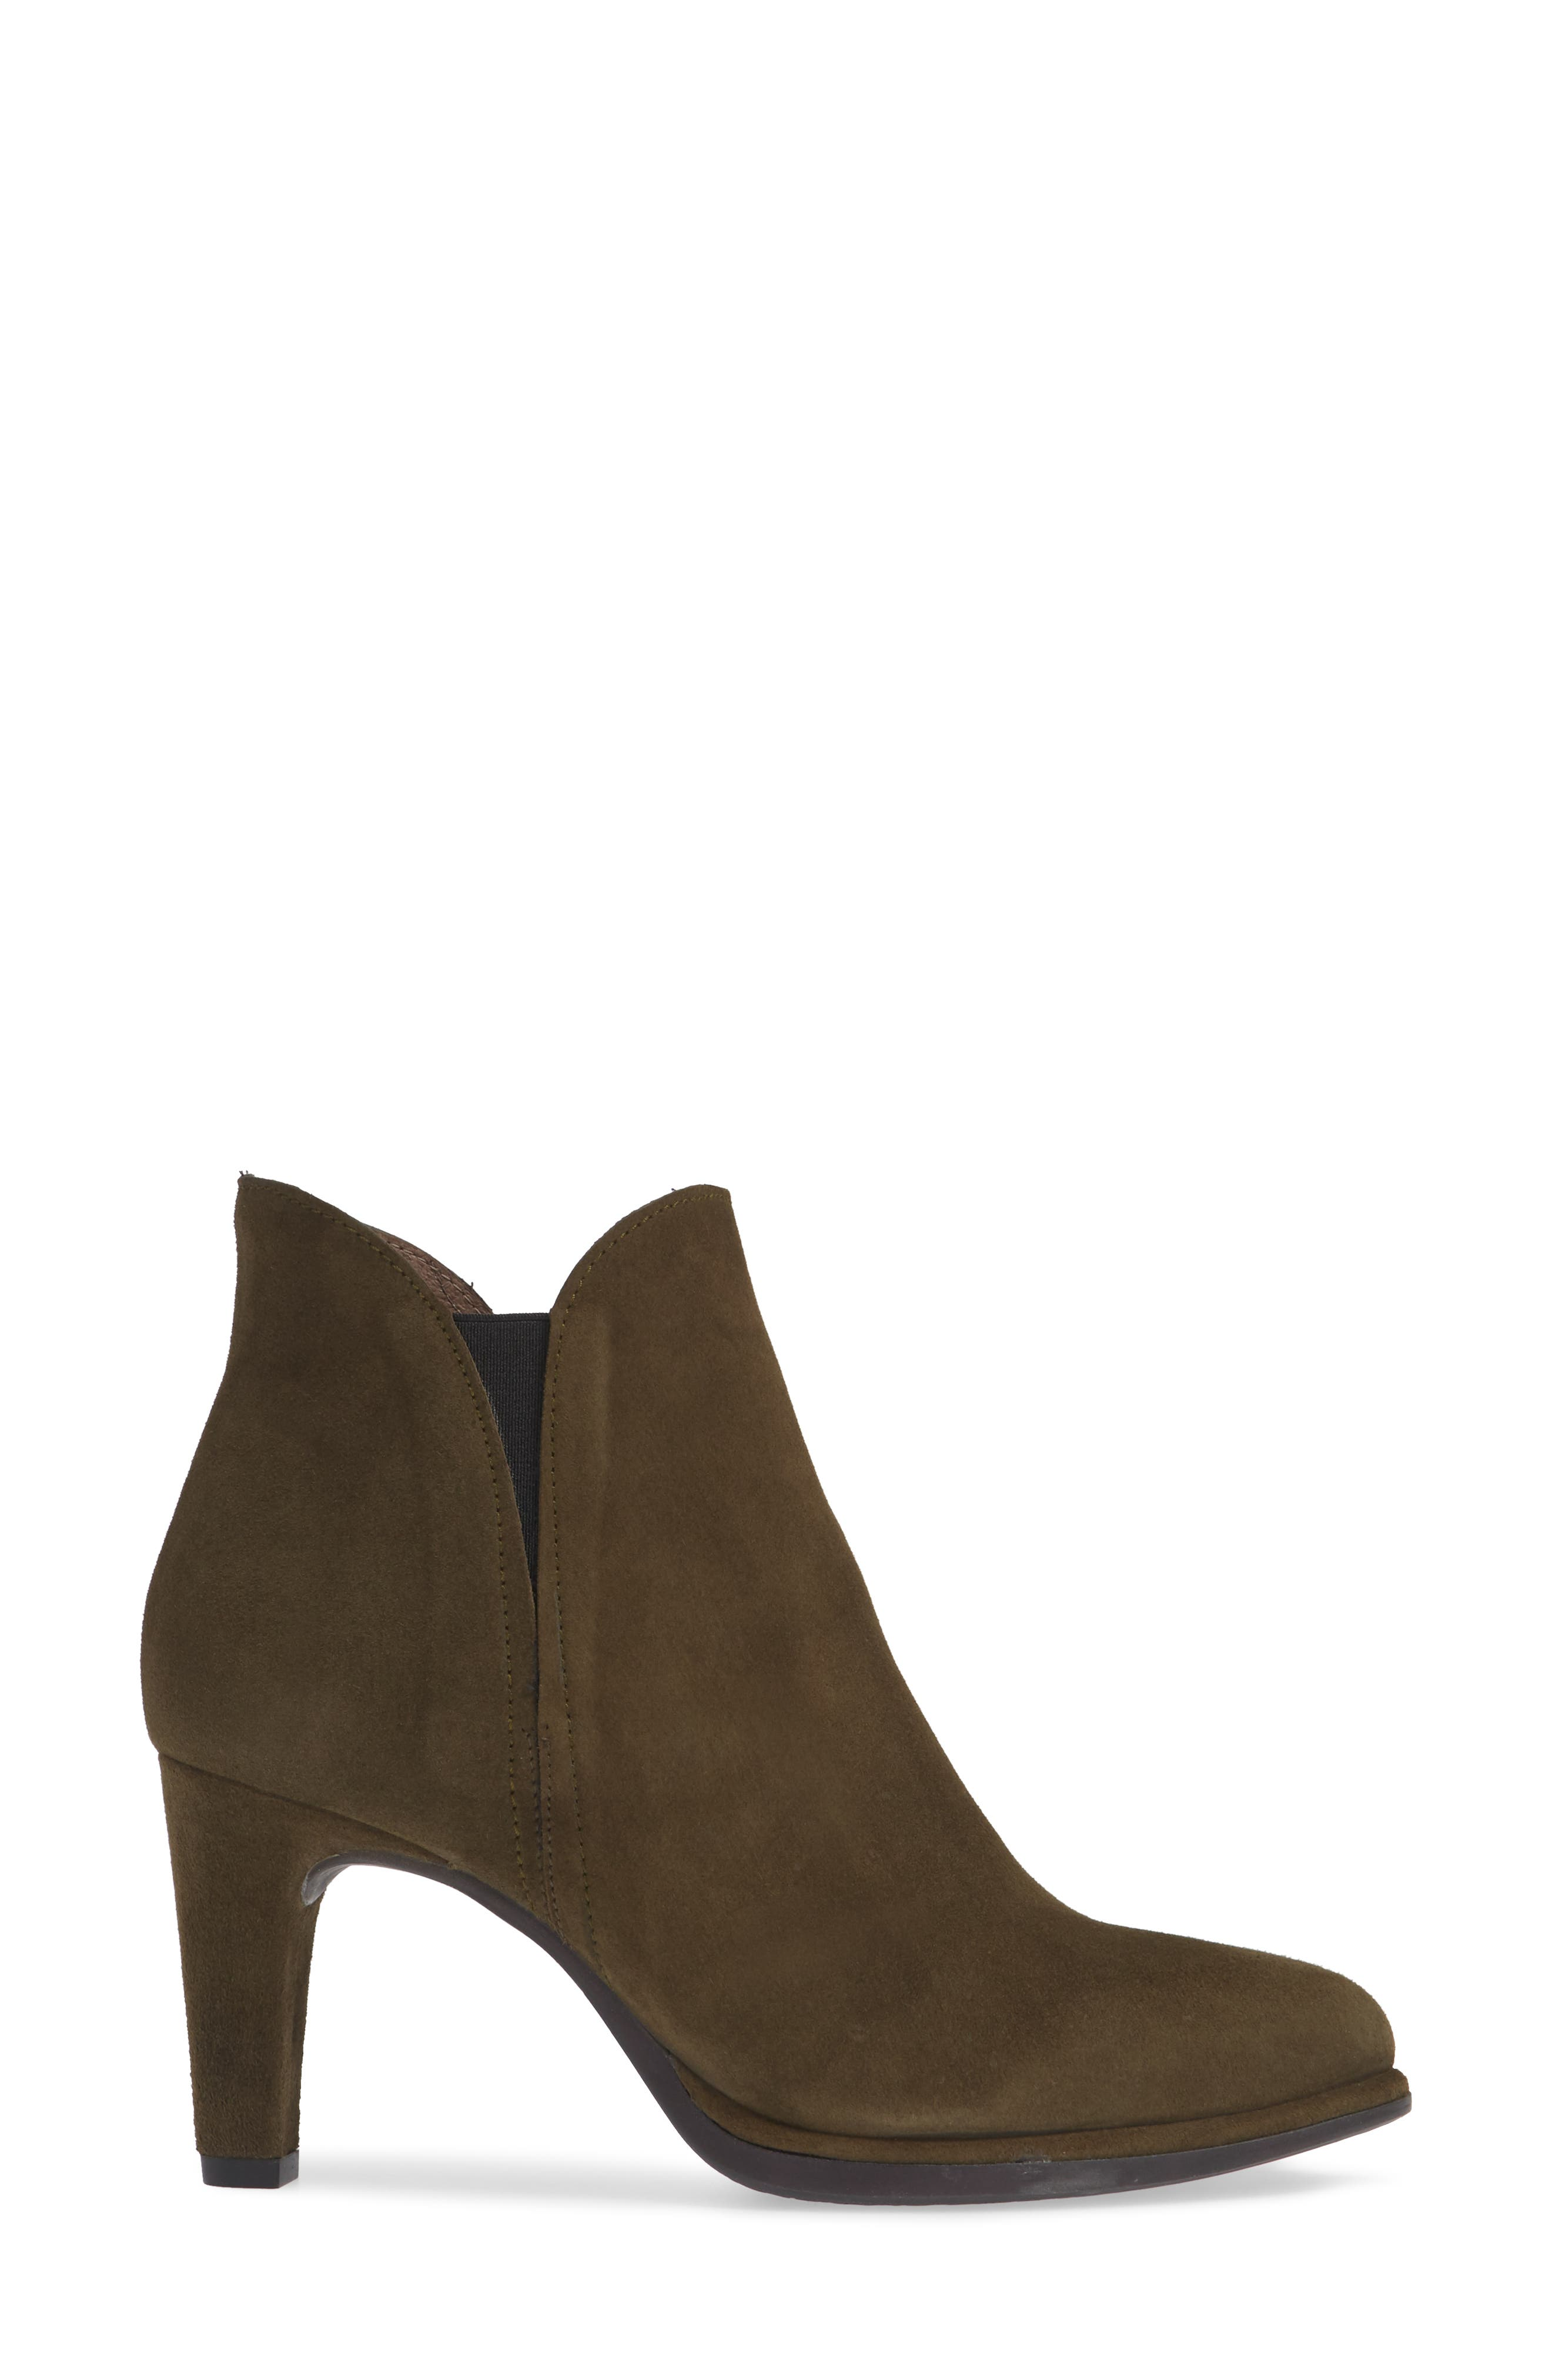 Chelsea Boot,                             Alternate thumbnail 3, color,                             MILITARY GREEN SUEDE